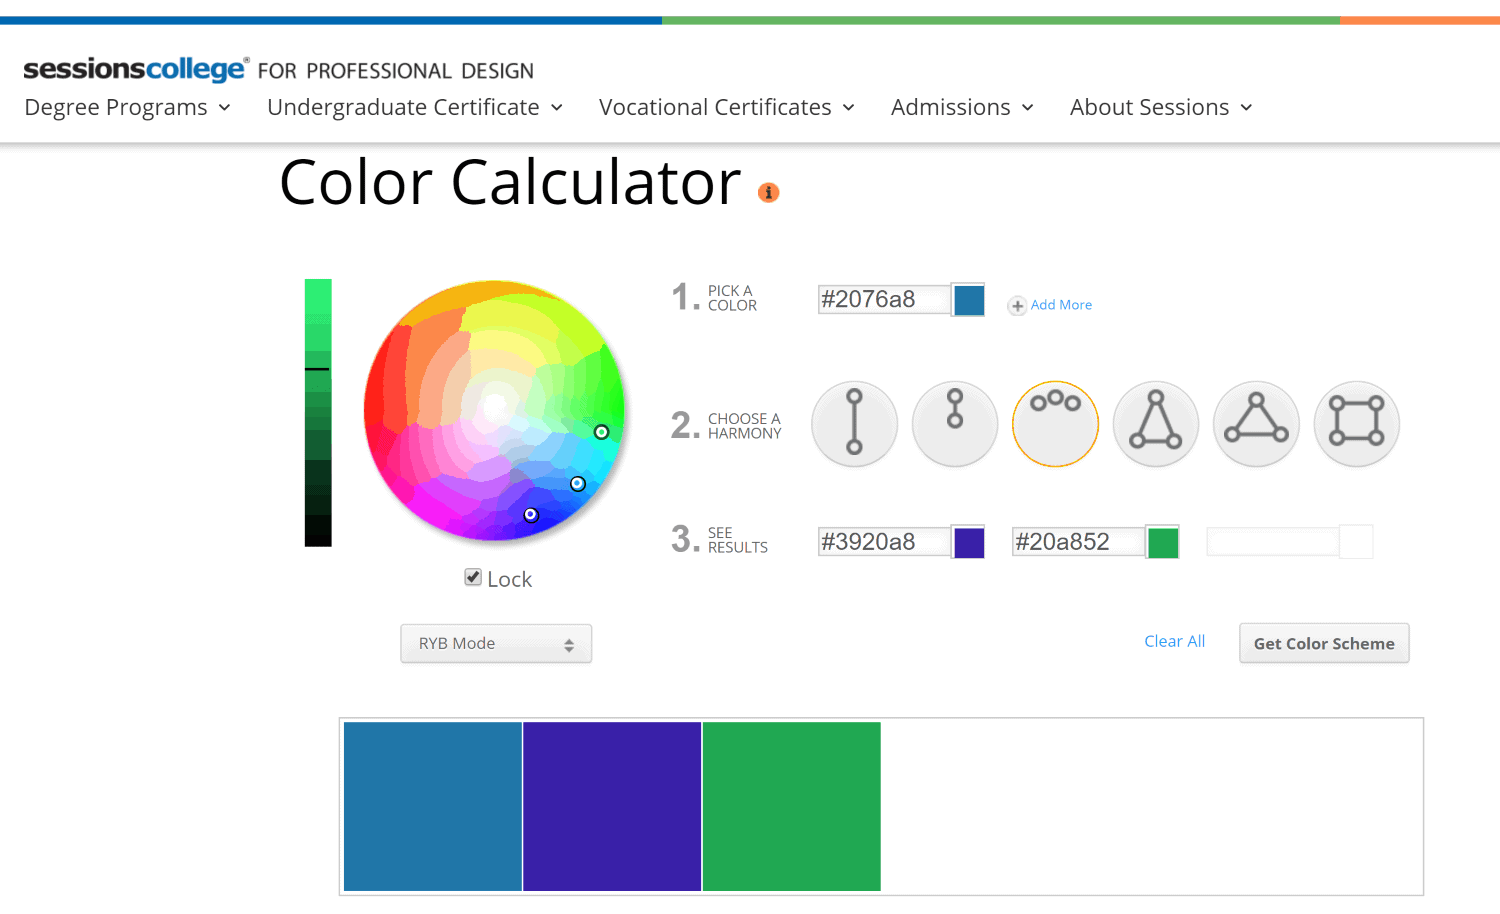 The color calculator tool created by Sessions College can help you identify complimentary colors for your Instagram aesthetic